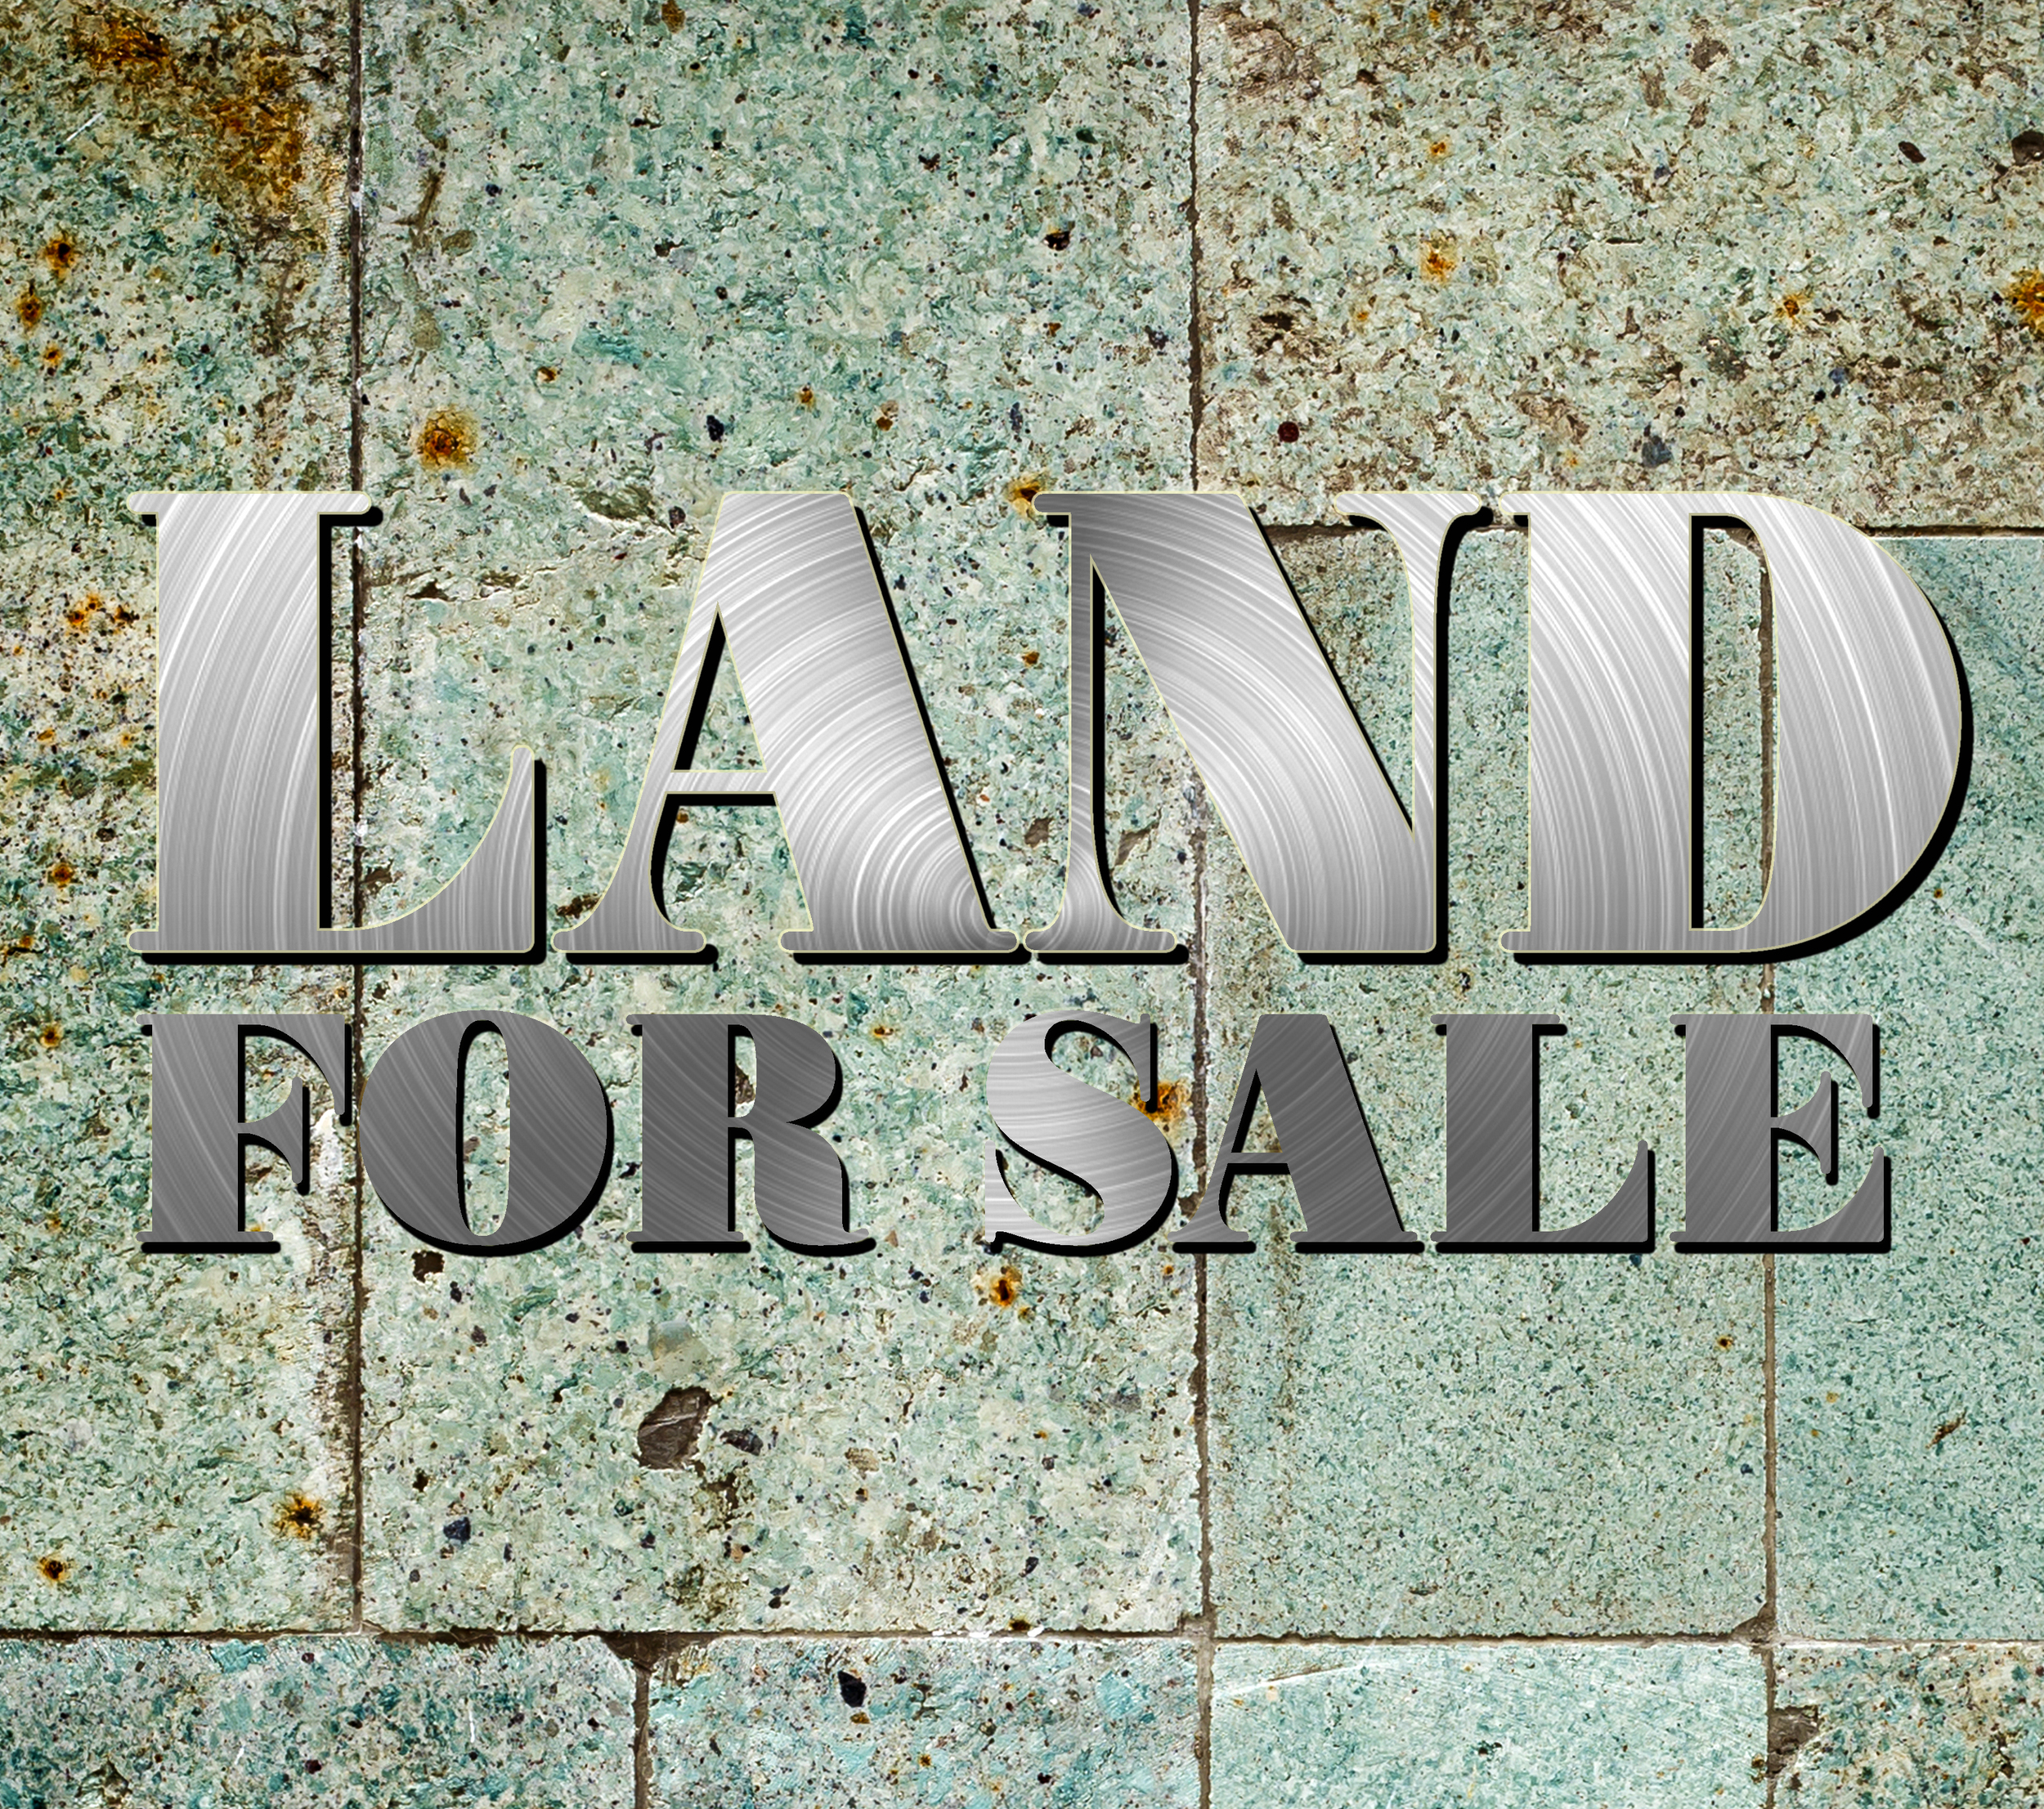 HOMEoklahoma land for sale button